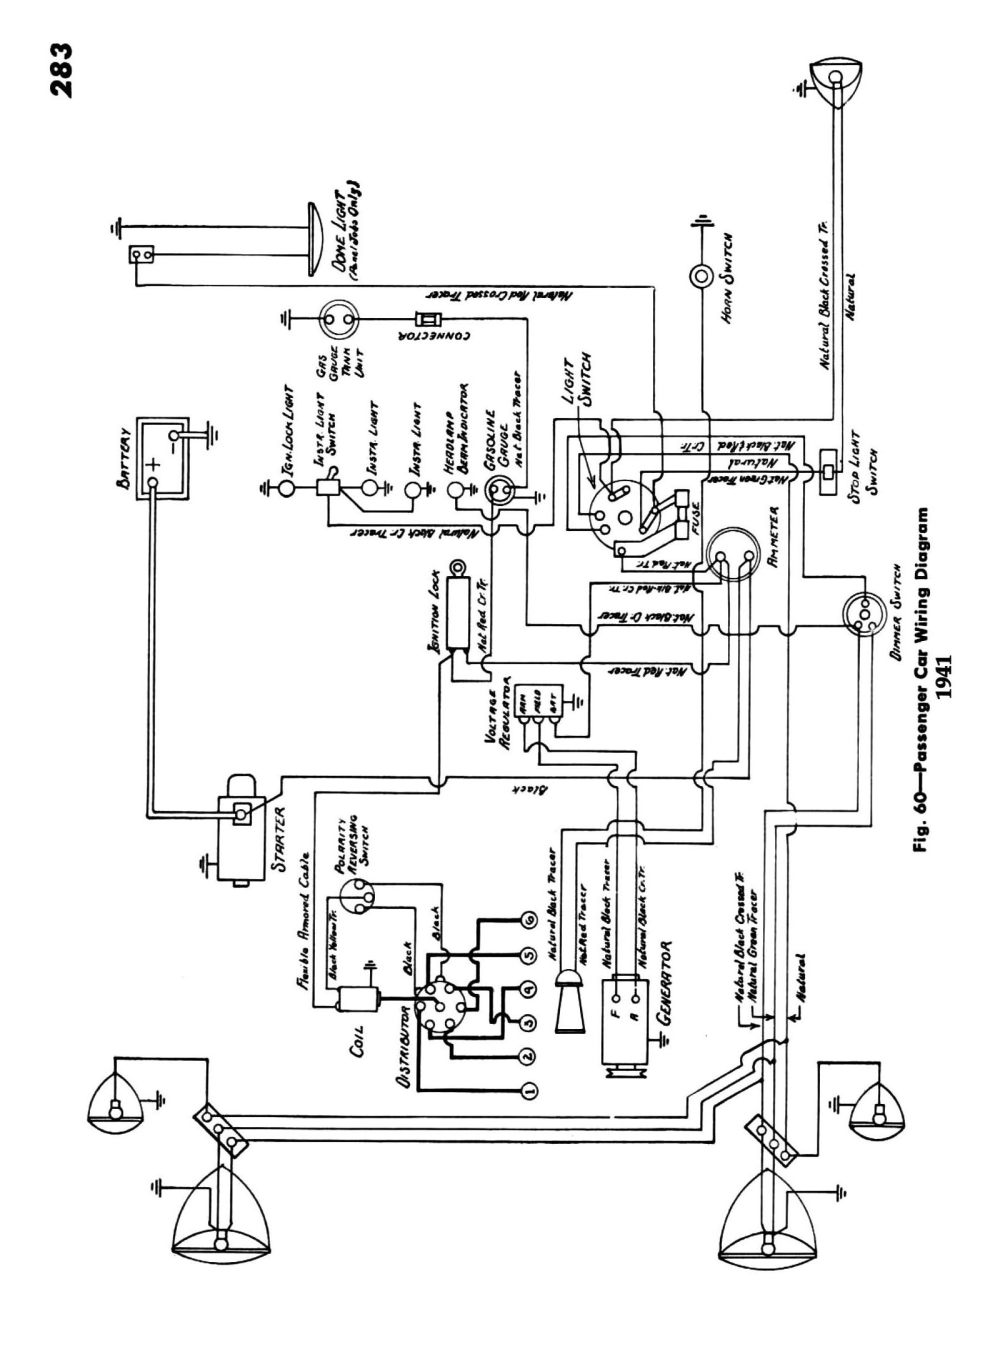 medium resolution of wrg 7297 auto diagram 1970 plymouth wiring 1960 chevy truck 1941 passenger car wiring chevy